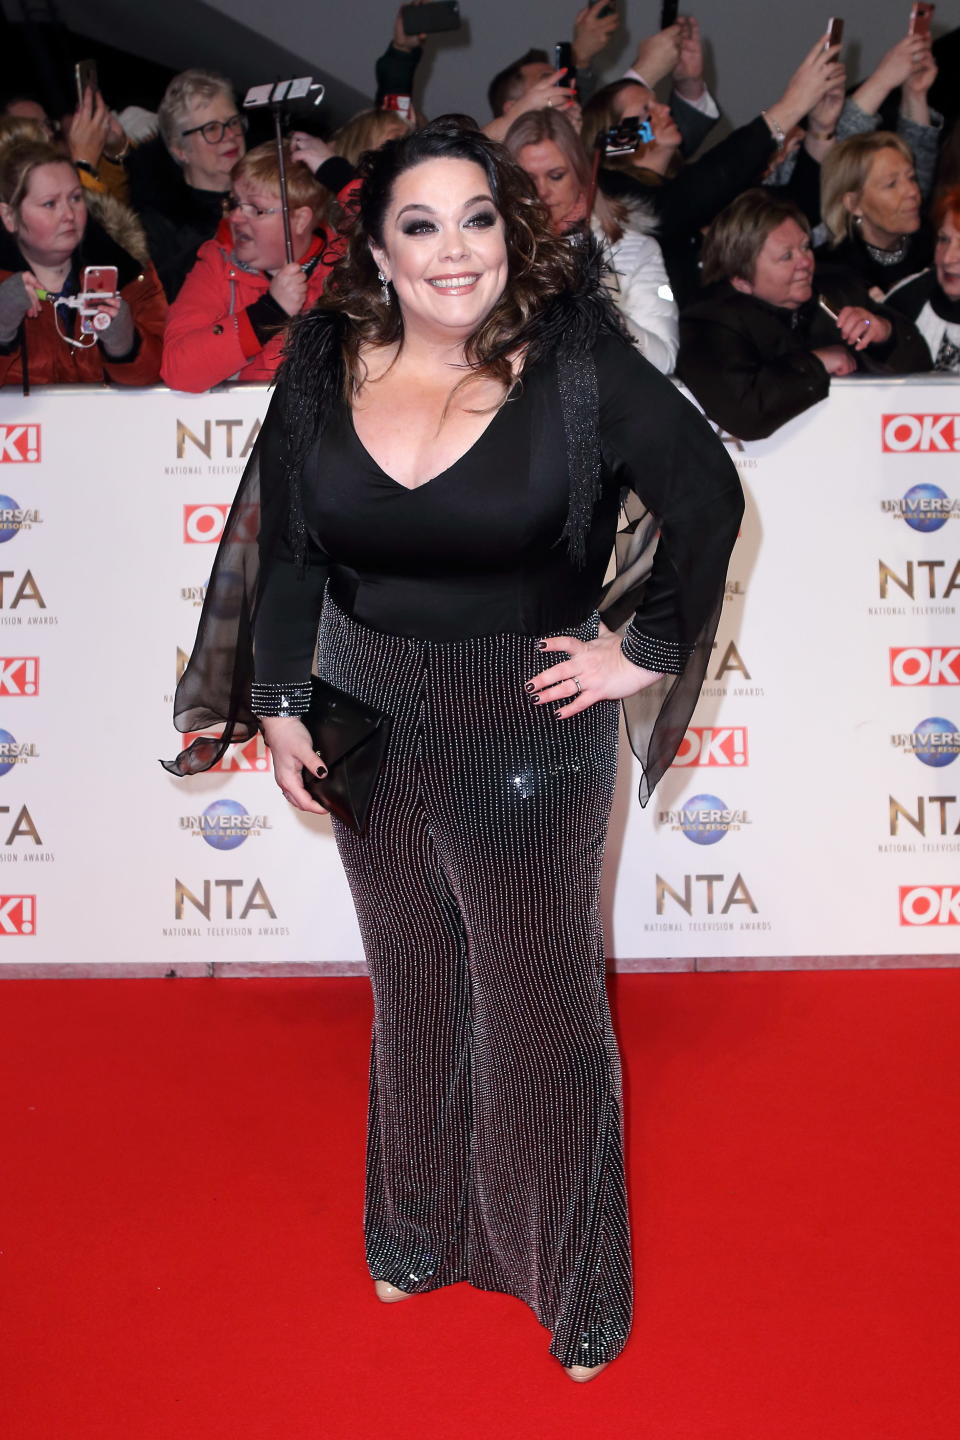 Lisa Riley arrives at the National television Awards 2020 O2 greenwich London- PHOTOGRAPH BY Jamy / Barcroft Media (Photo credit should read Jamy/Barcroft Media via Getty Images)